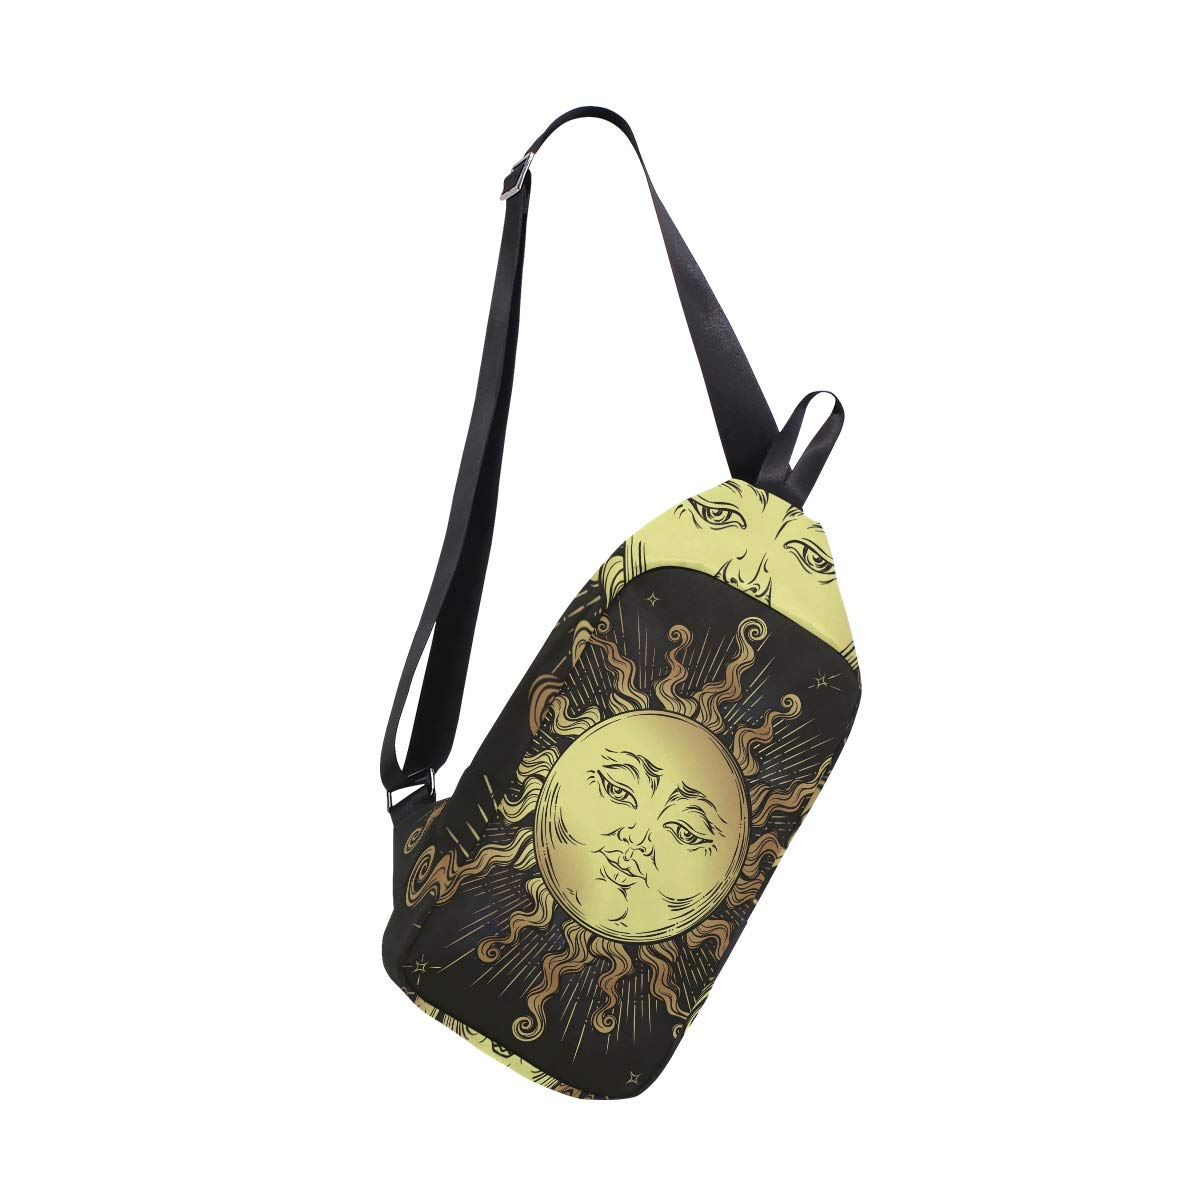 AHOMY Boho Sun Stars Messenger Bag Small Travel School Sling Bag Crossbody Bag